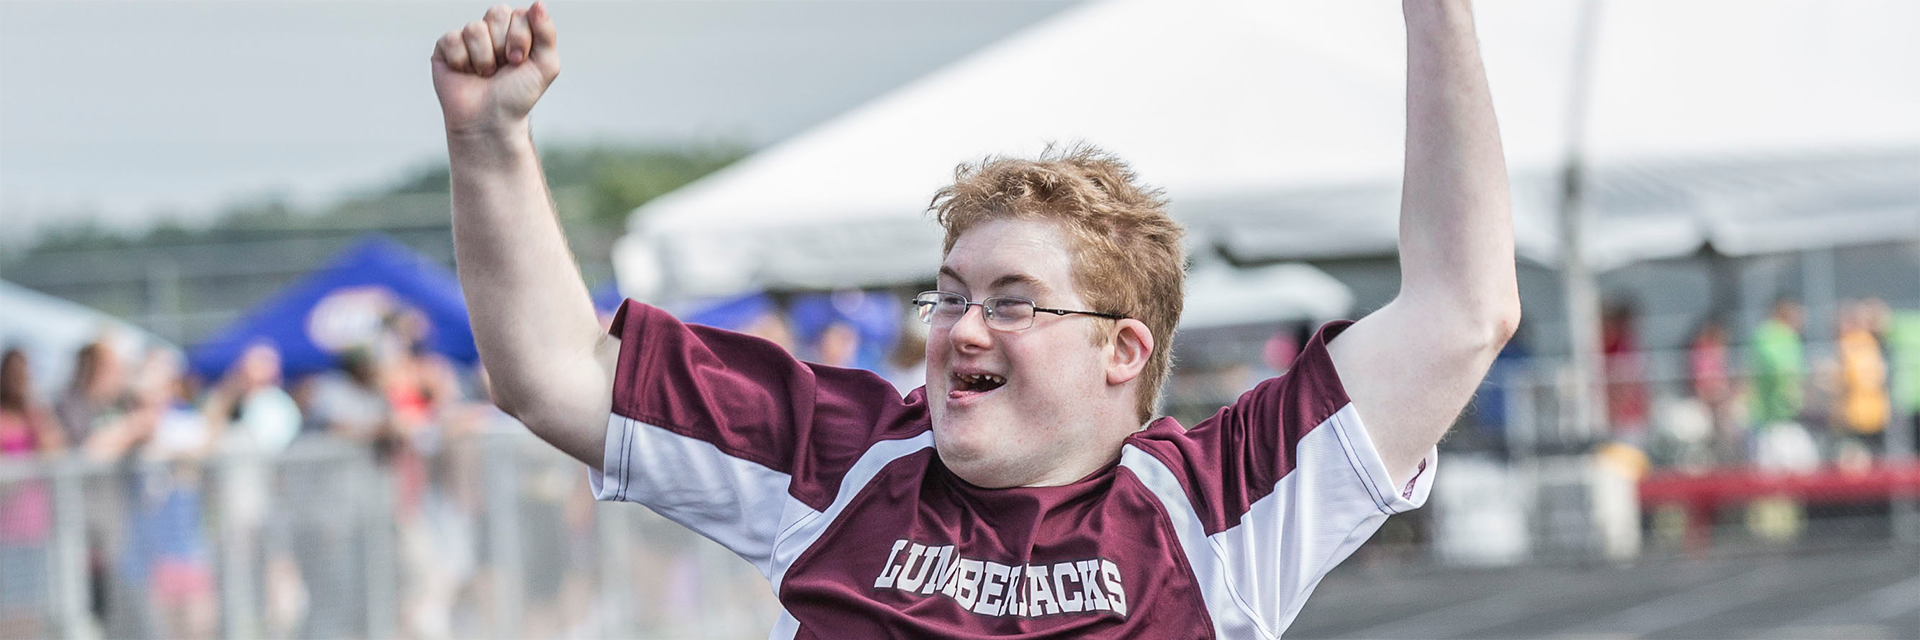 Special Olympics Minnesota athlete smiling and celebrating with arms up